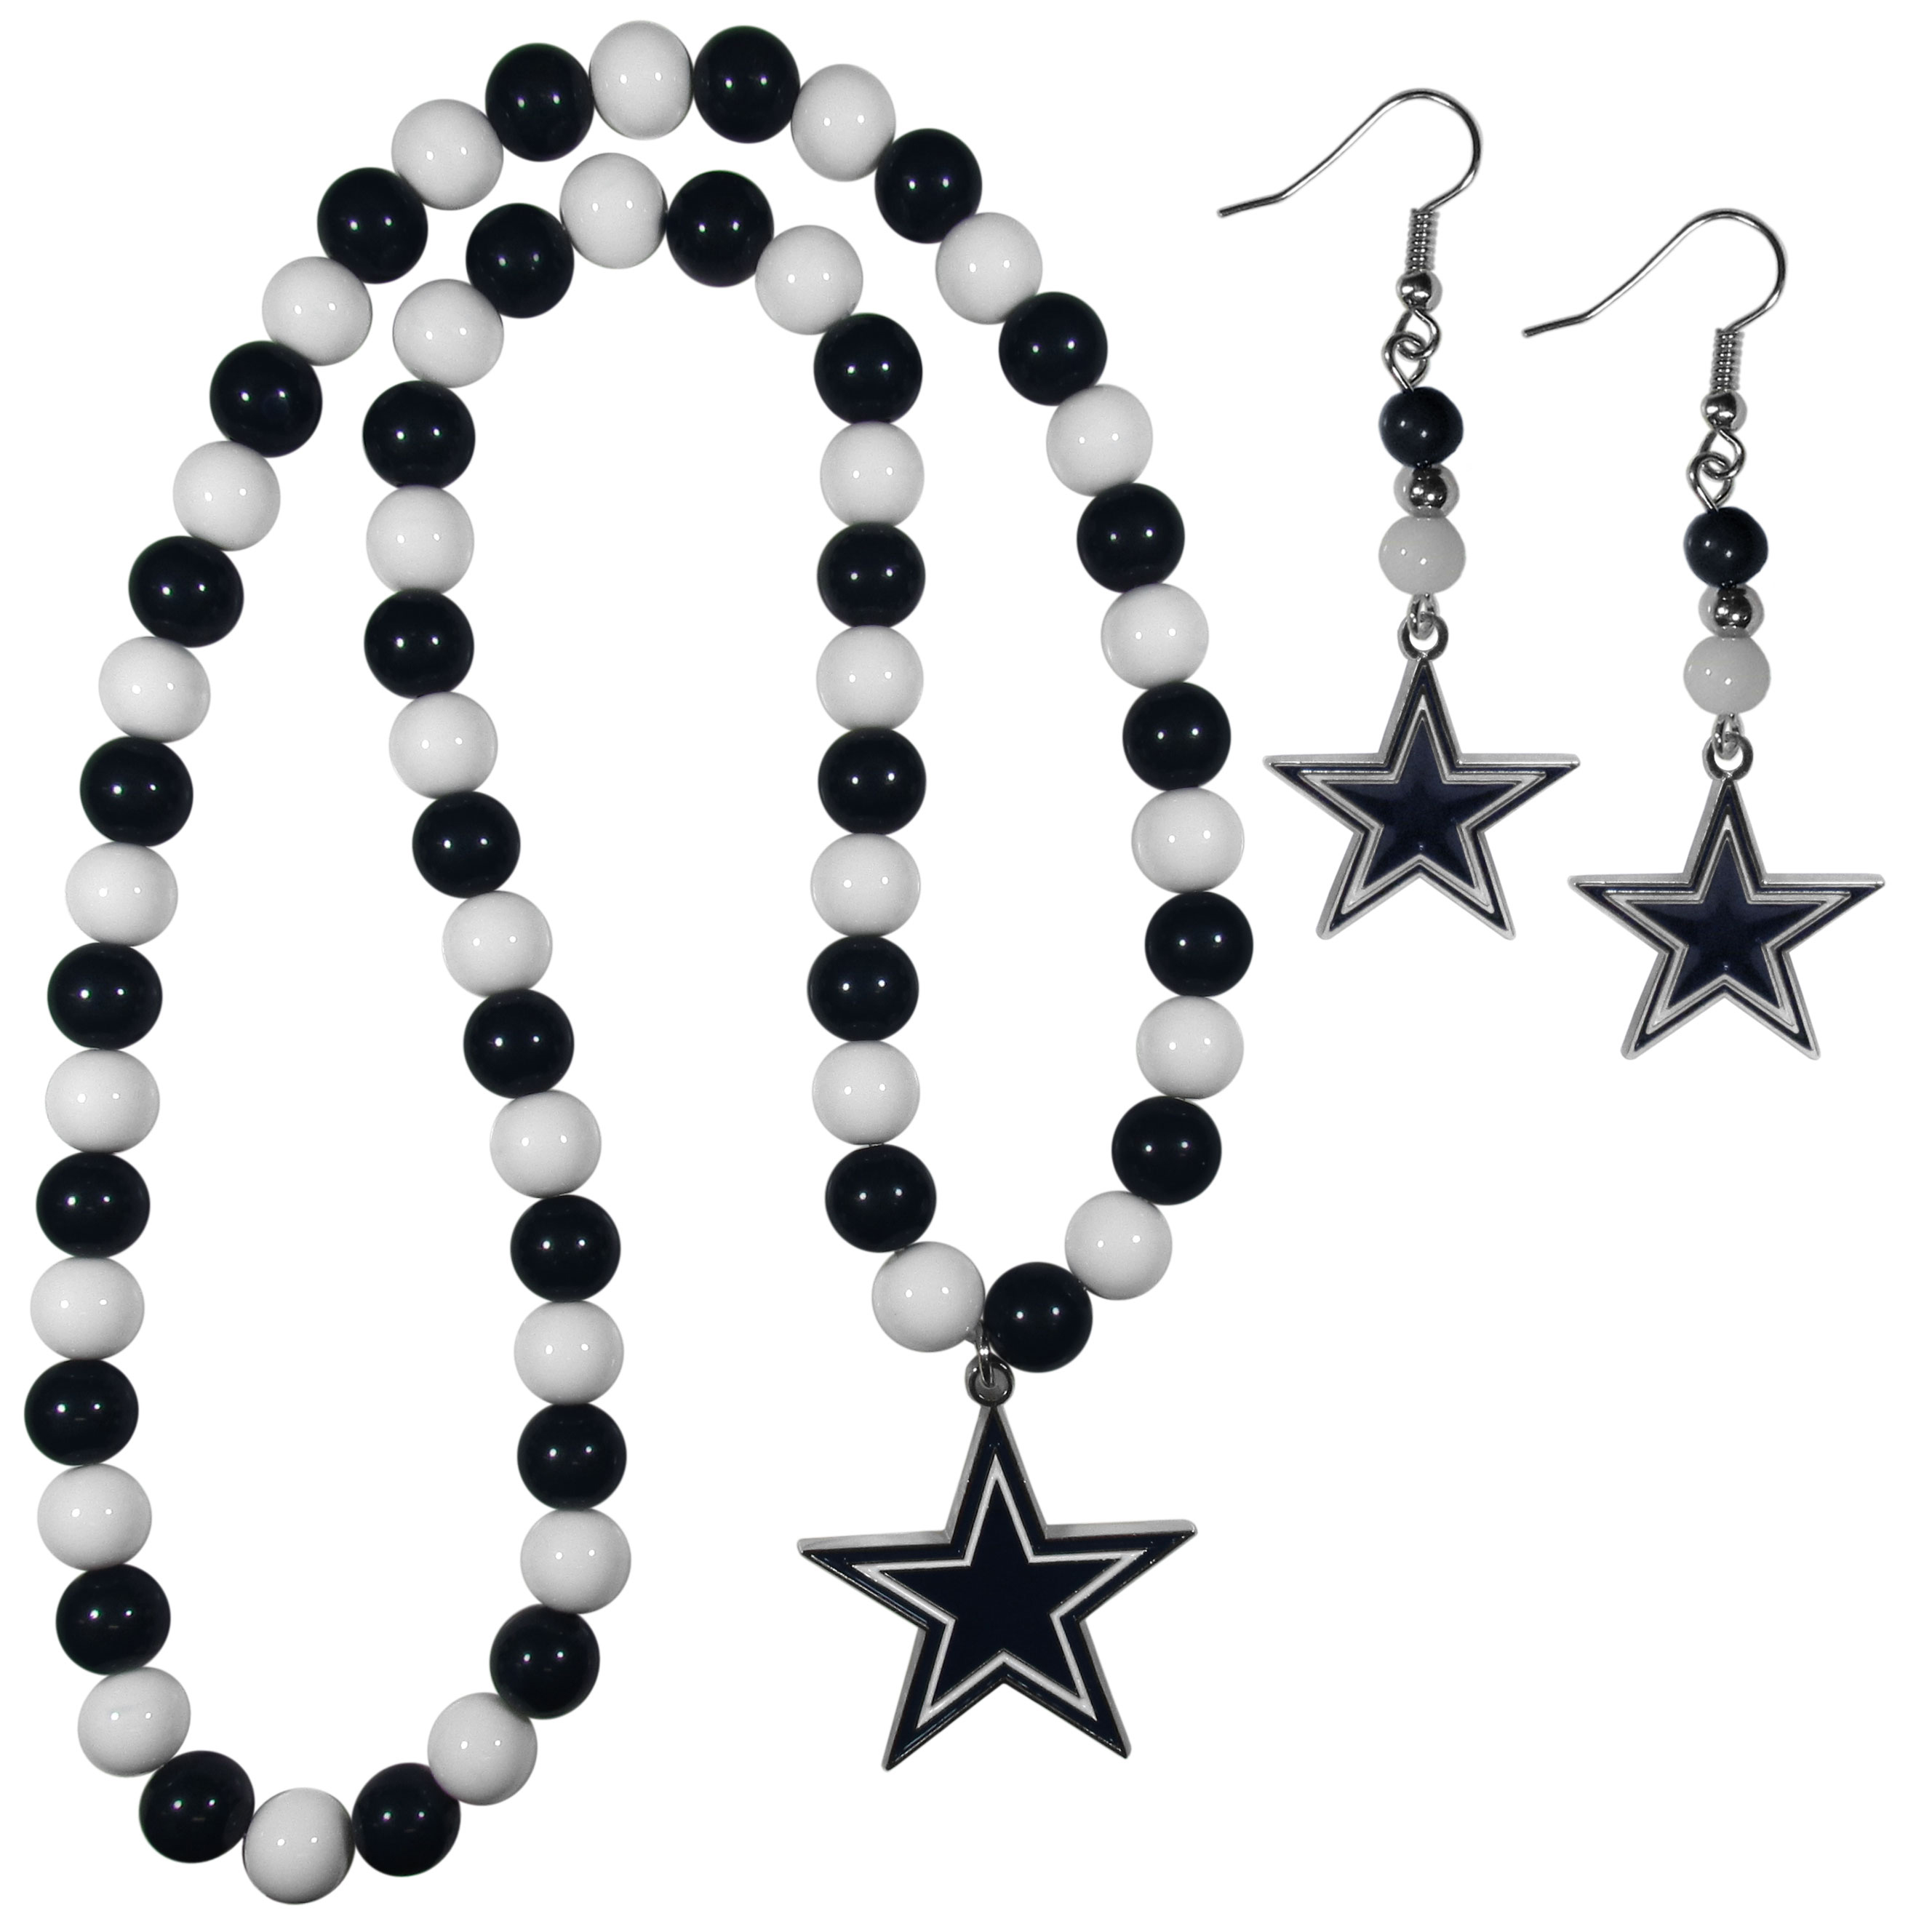 Dallas Cowboys Fan Bead Earrings and Necklace Set - These fun and colorful Dallas Cowboys fan bead jewelry pieces are an eyecatching way to show off your team spirit. The earrings feature hypoallergenic, nickel free fishhook post and 2 team colored beads with a beautifully carved team charm to finish this attractive dangle look. The mathcing bracelet has alternating team colored beads on a stretch cord and features a matching team charm.